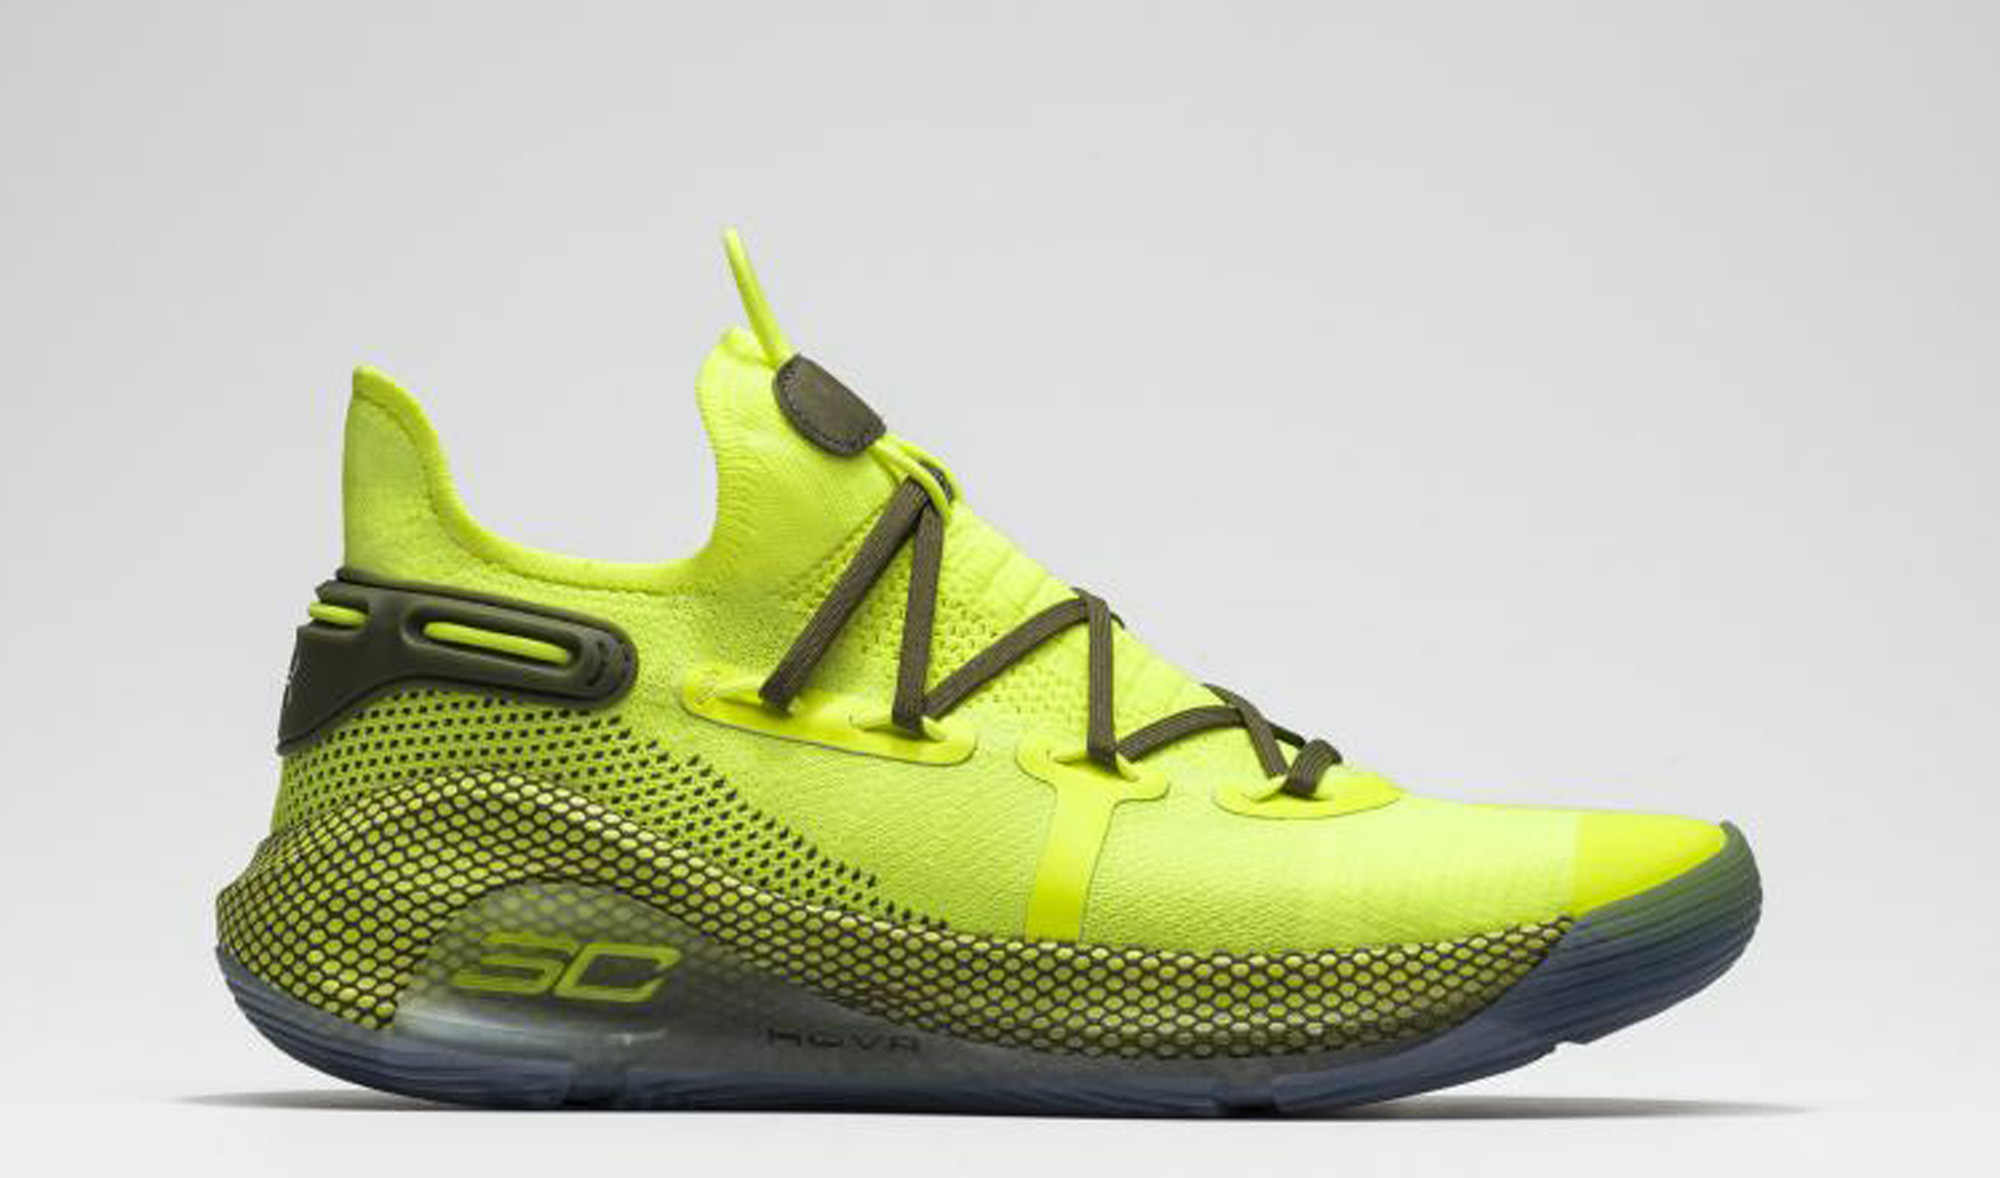 curry shoes all star 2019 Under Armour